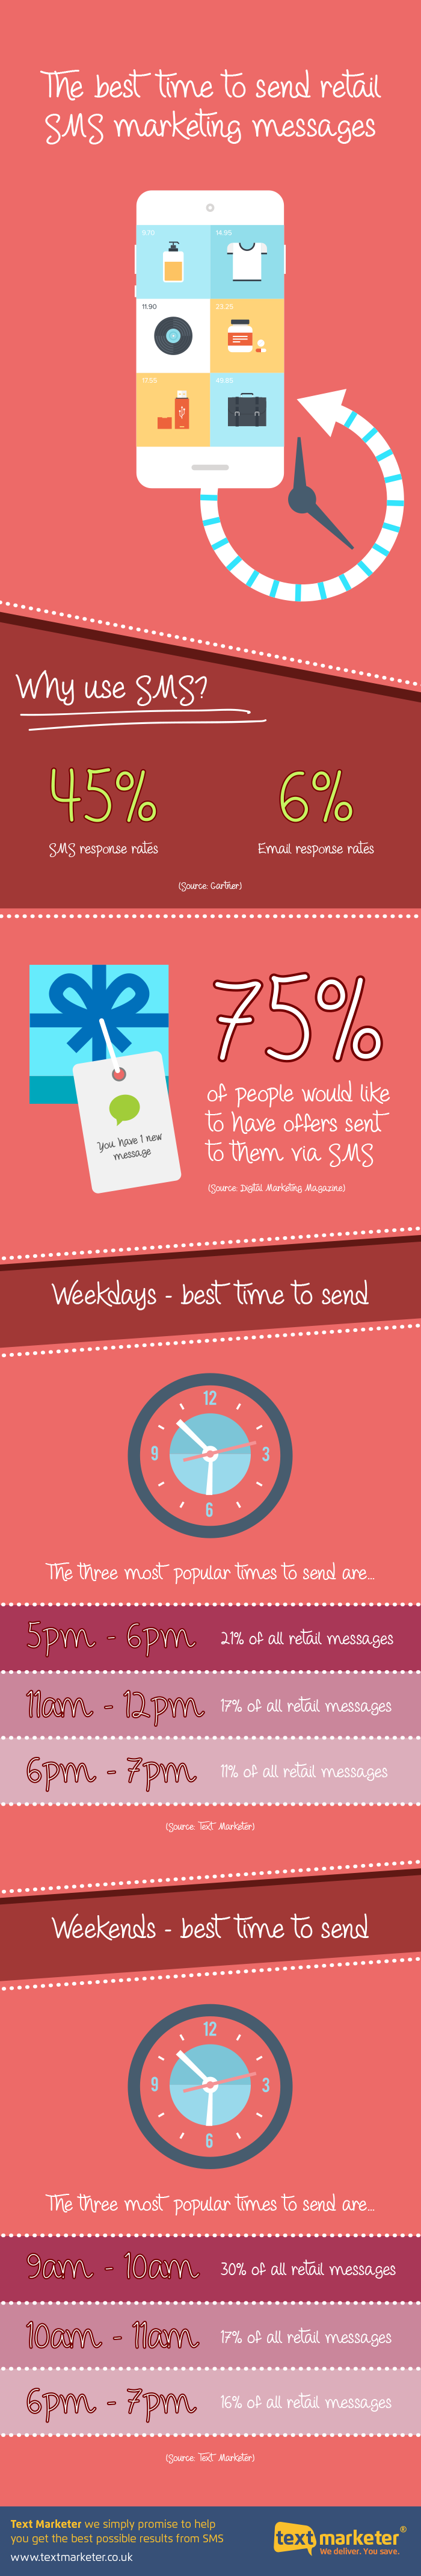 The best time to send retail SMS marketing messages